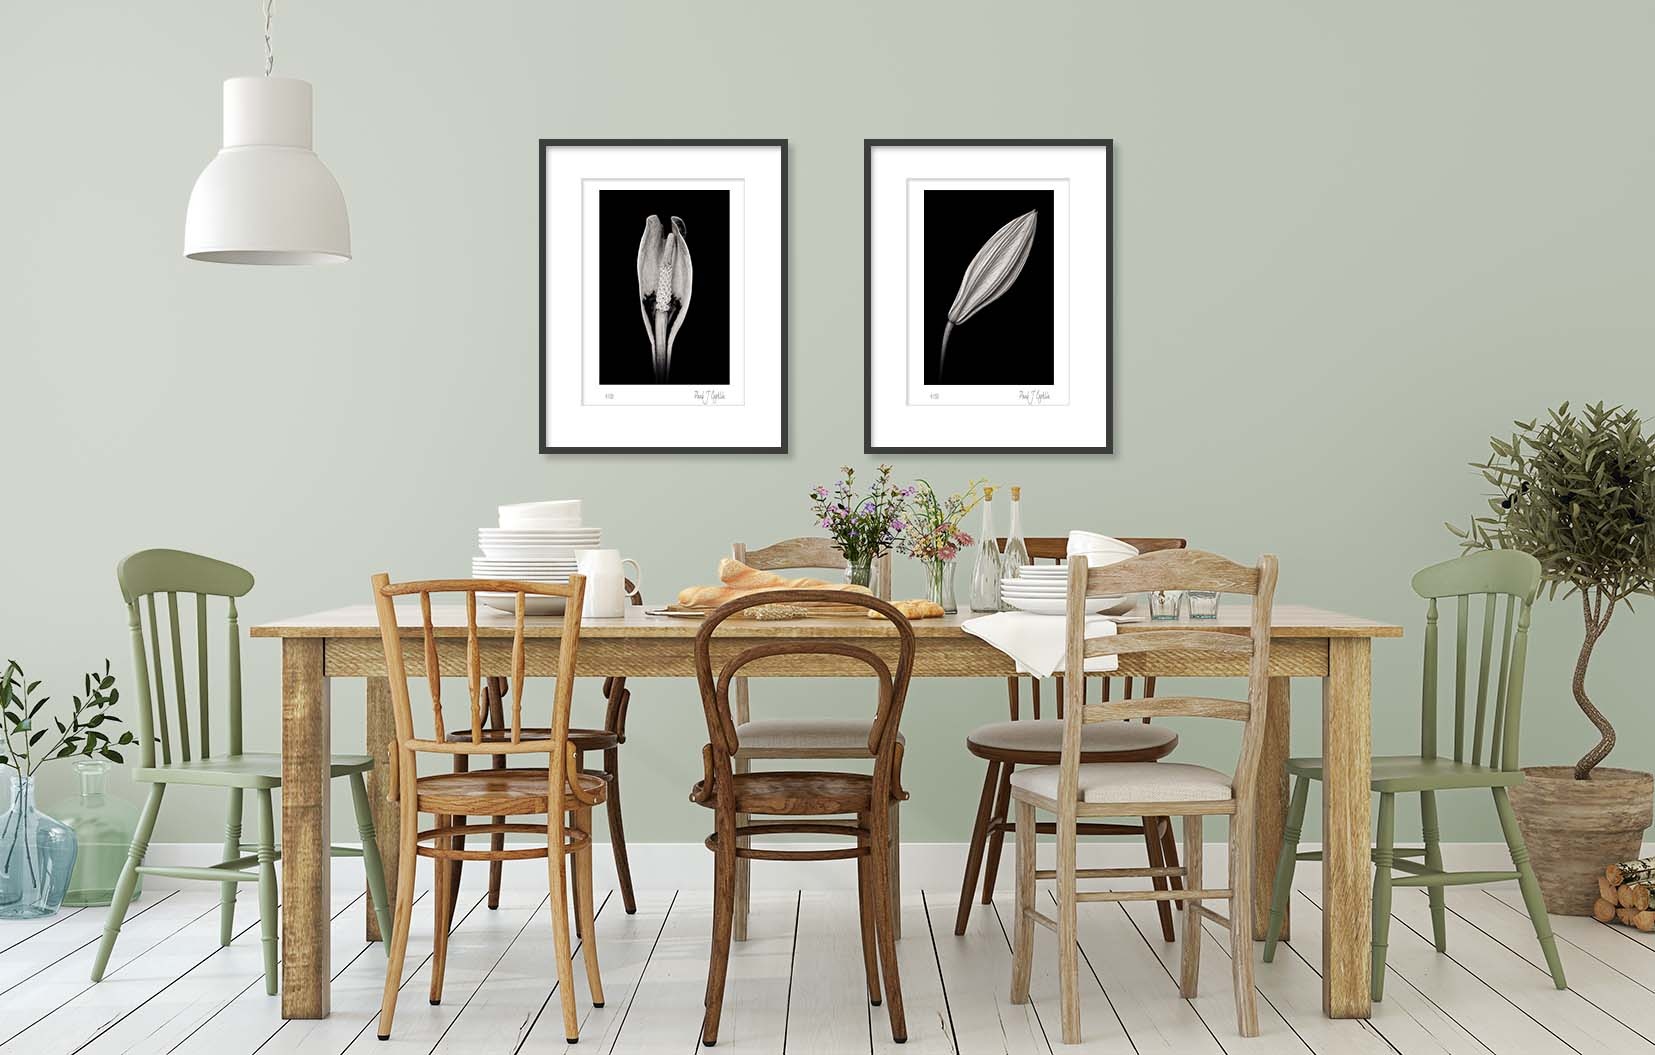 Black and white limited edition print of a Stargazer Lily and a Calla Lily by fine art photographer Paul Coghlin.